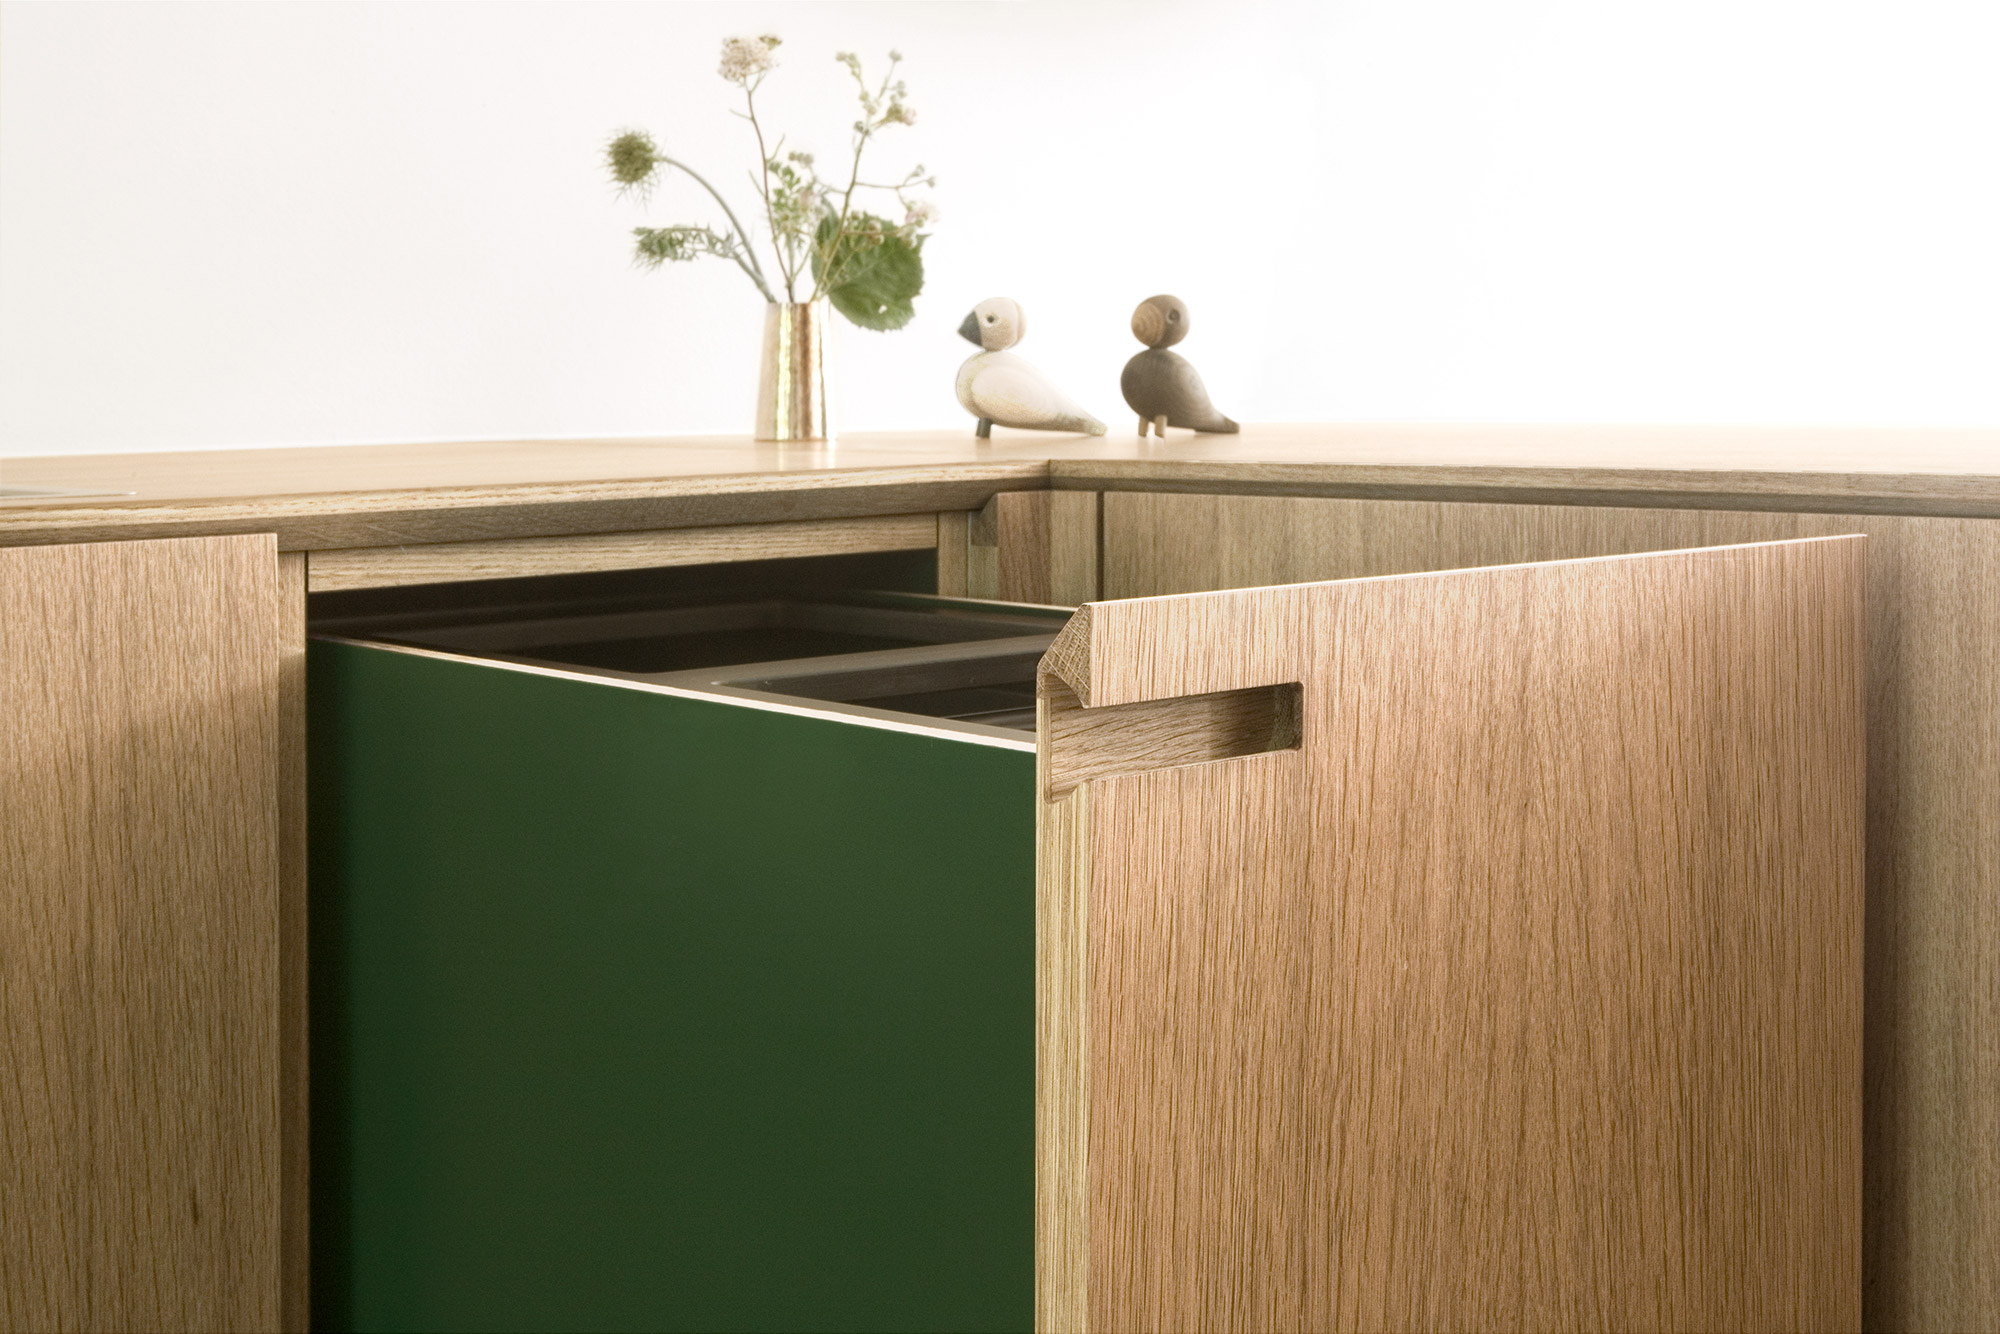 Details from the minimalist oak wood kitchen Egernvej: Waste bin in solid oak.